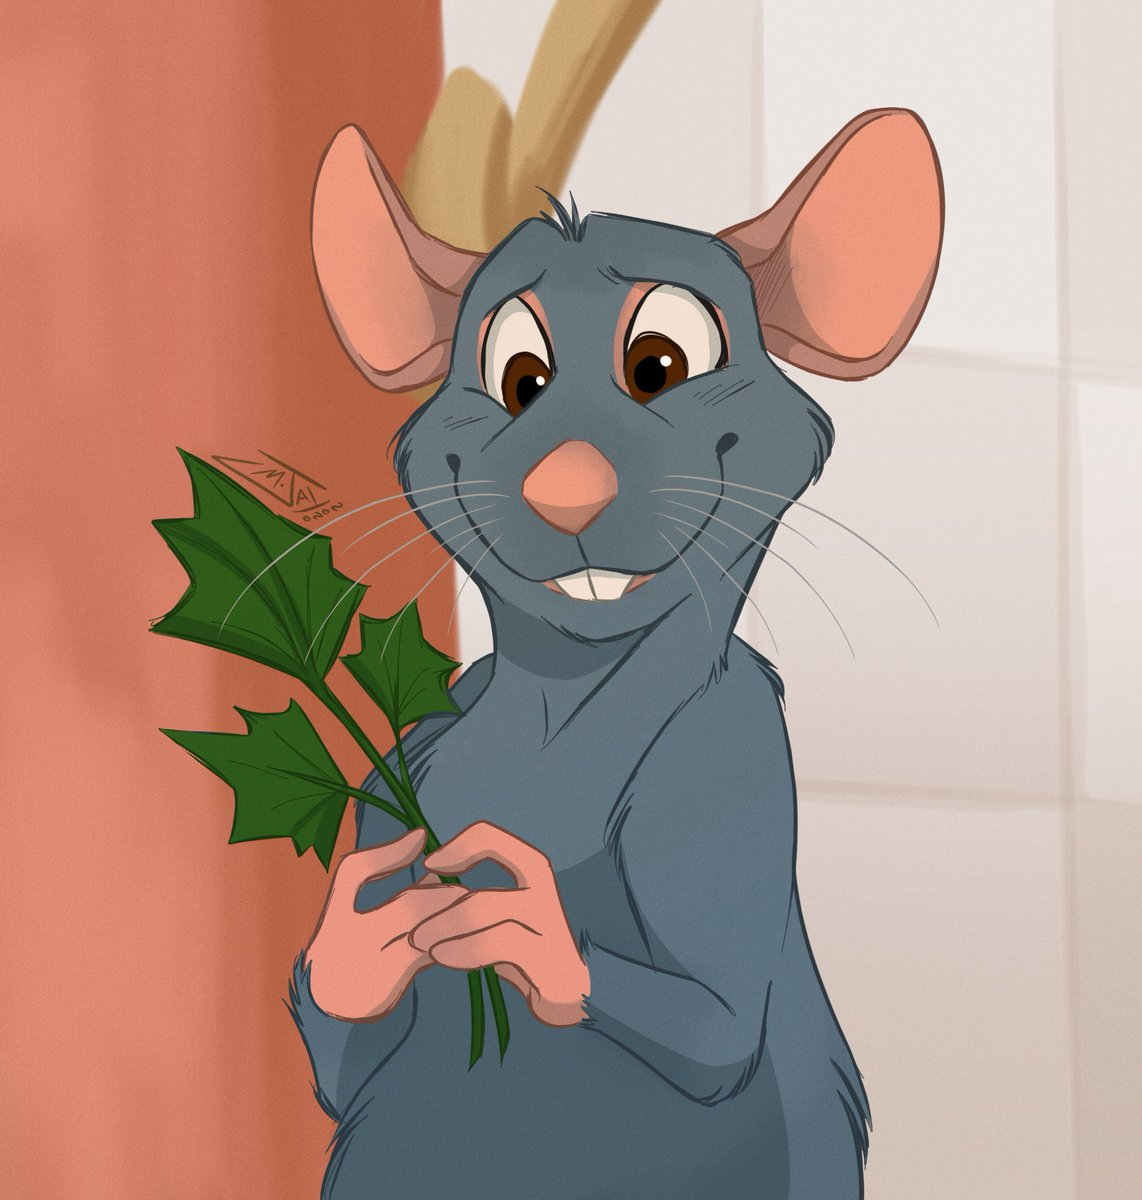 🐭🌿  Ultimo! Ratatouille merece mais amor. #Pixar https://t.co/LyuwYWel7U